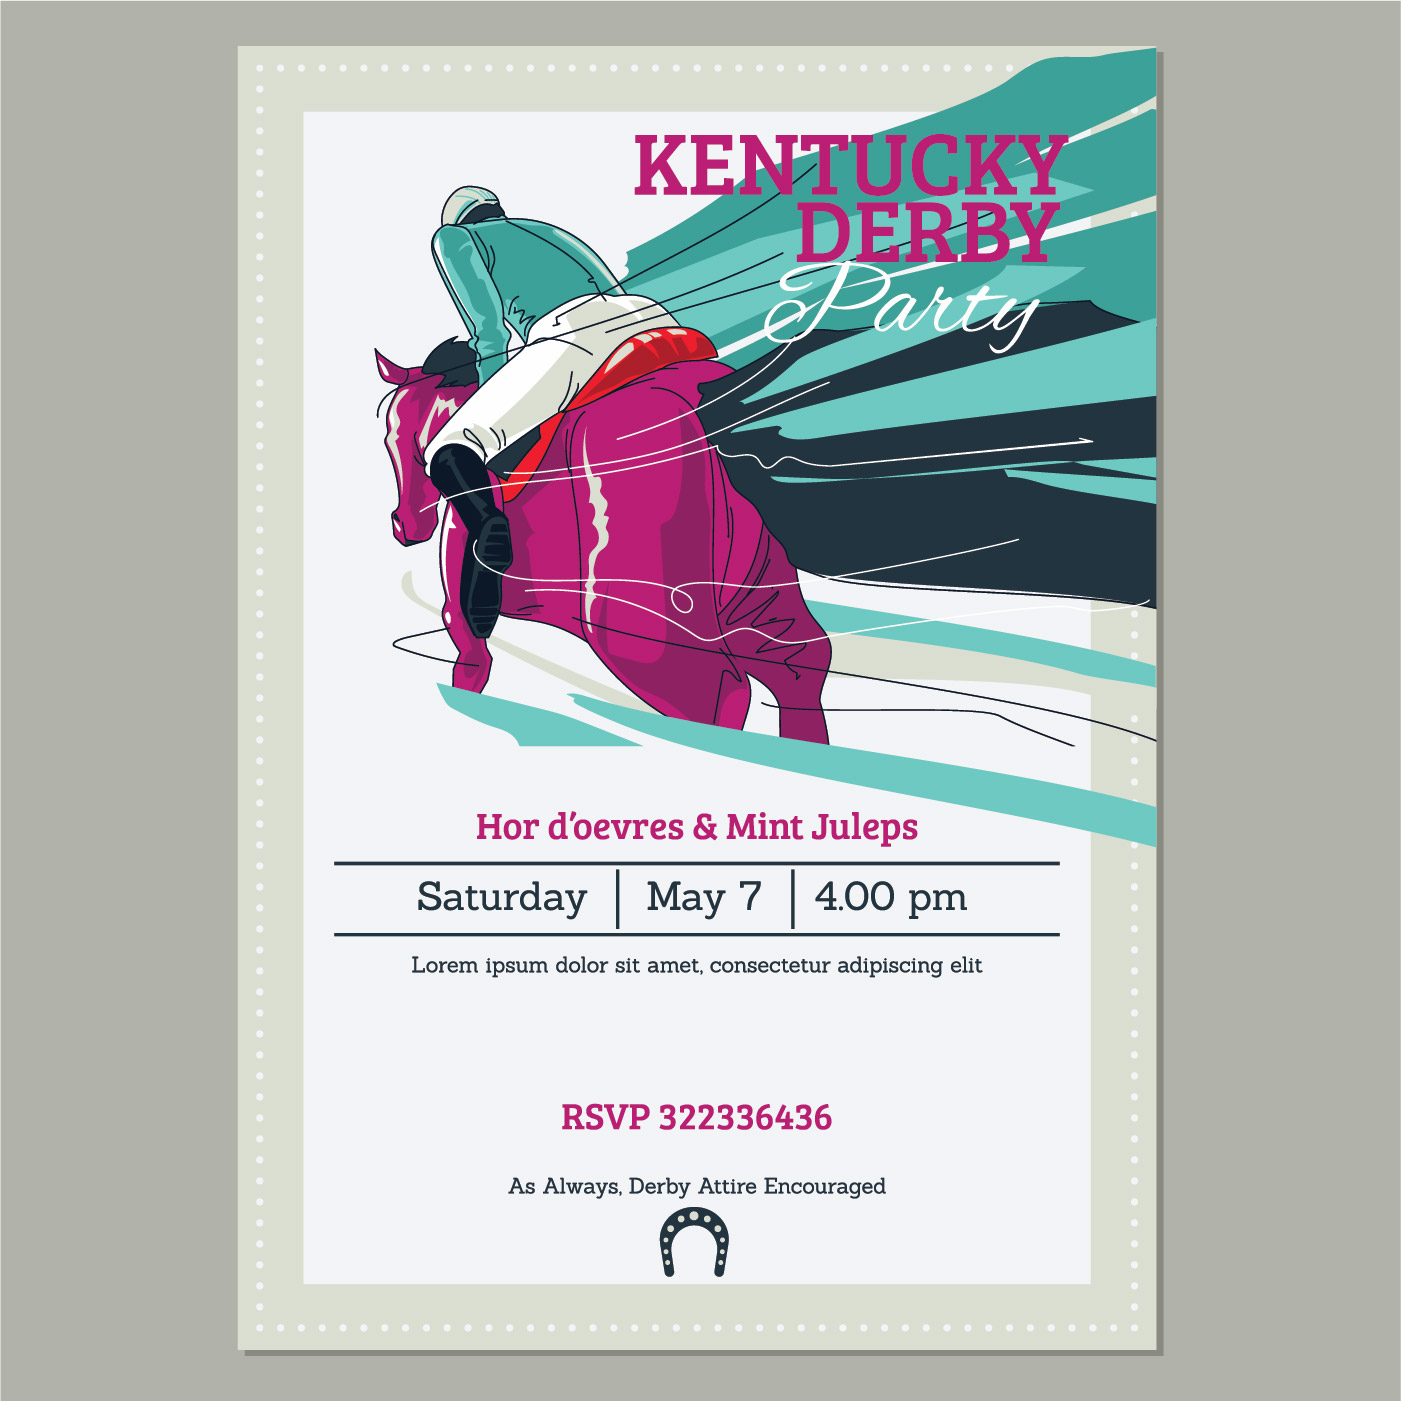 Kentucky Derby Party invitation Template with Running Racing